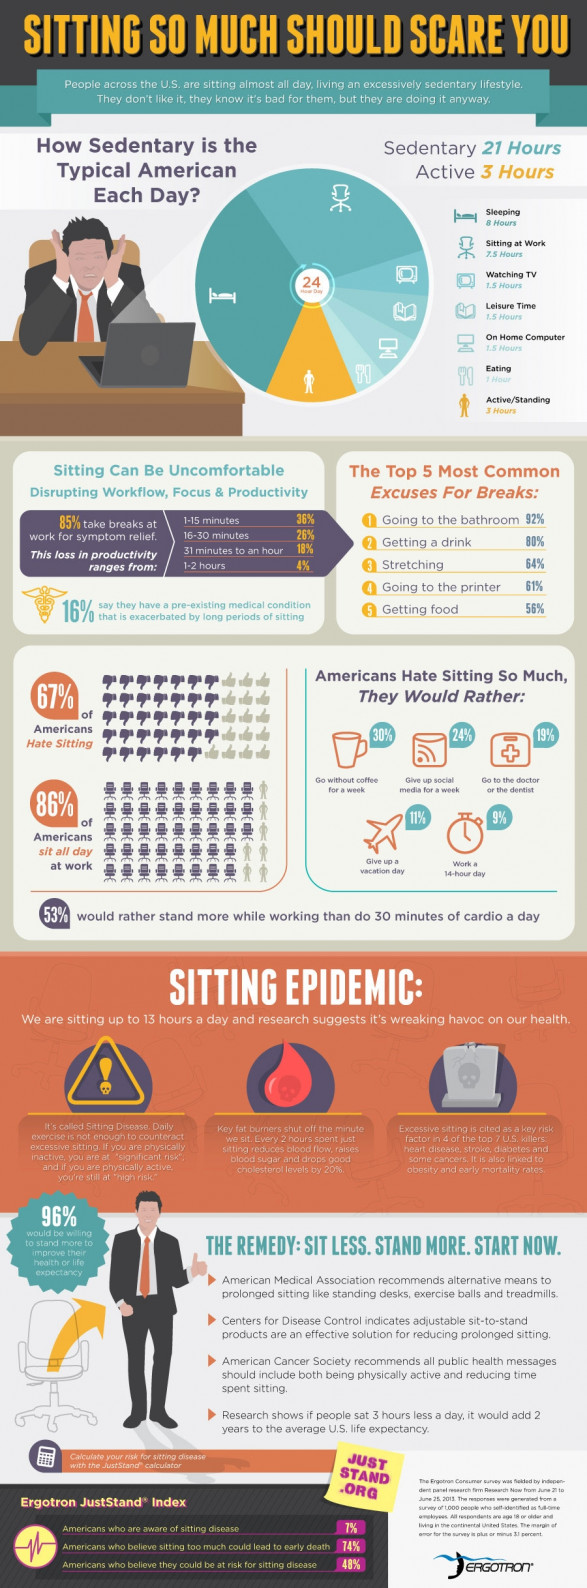 Sitting So Much Should Scare You